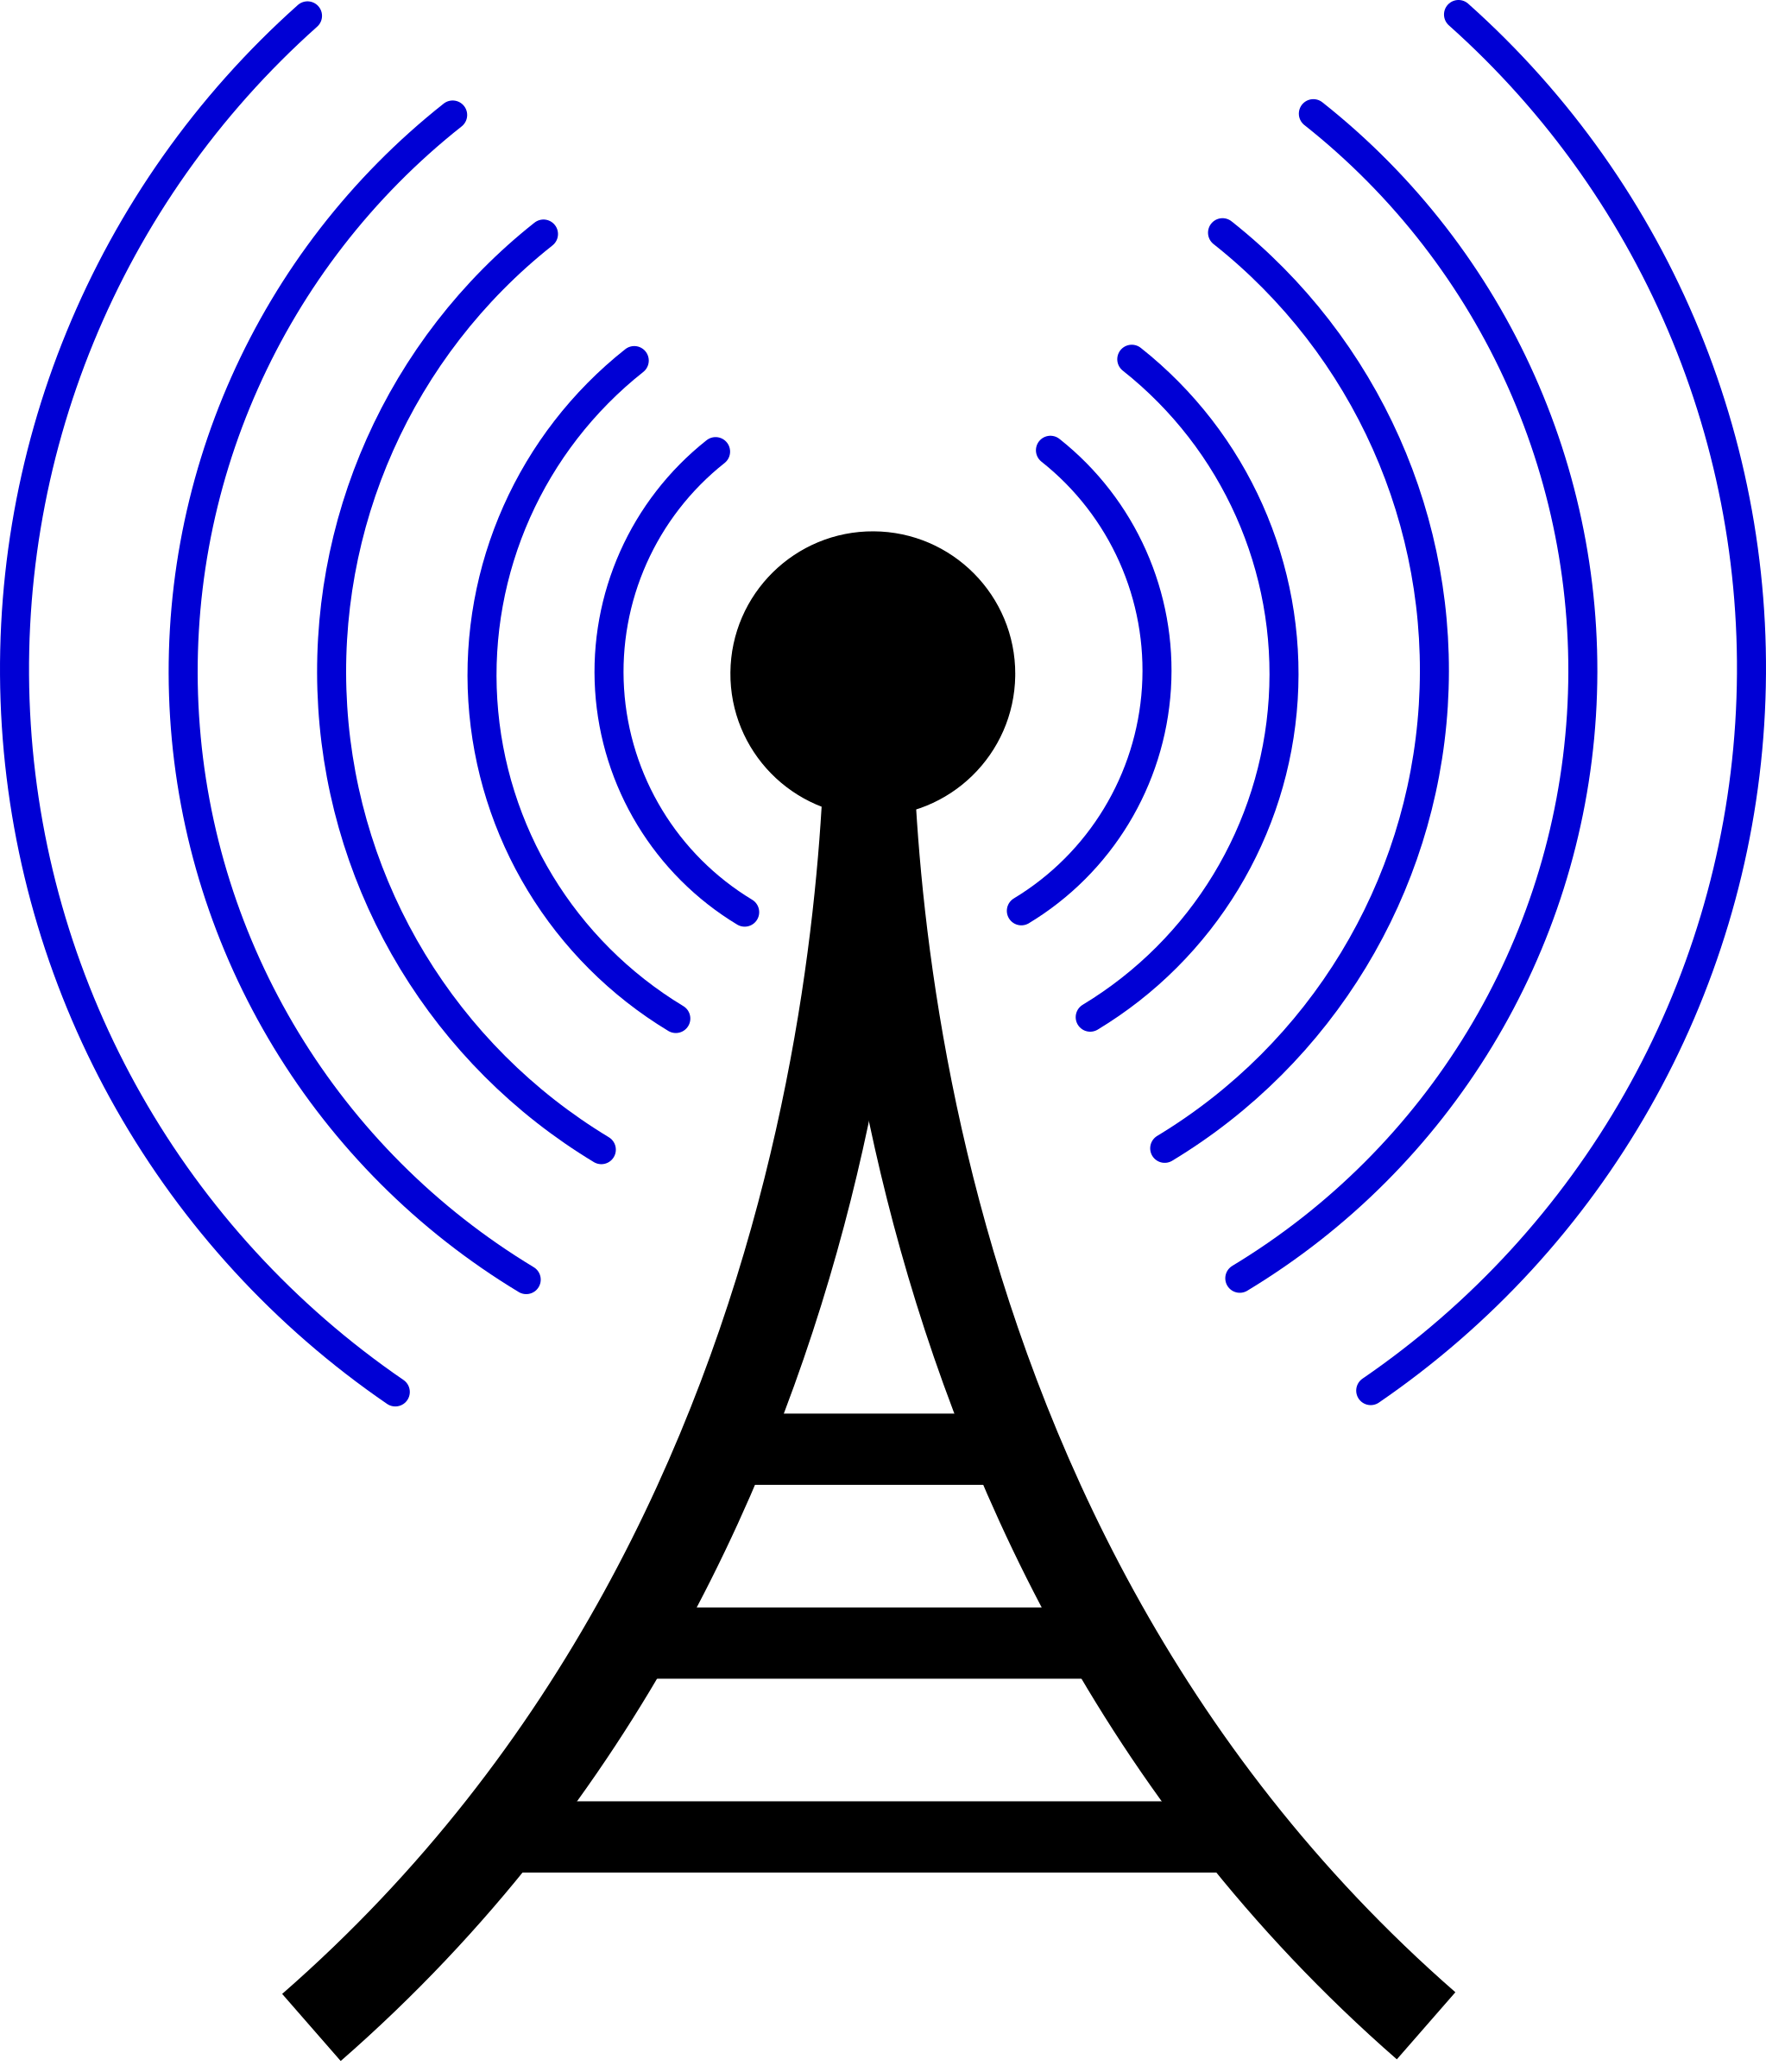 Internet clipart connection. Radio wireless tower cor